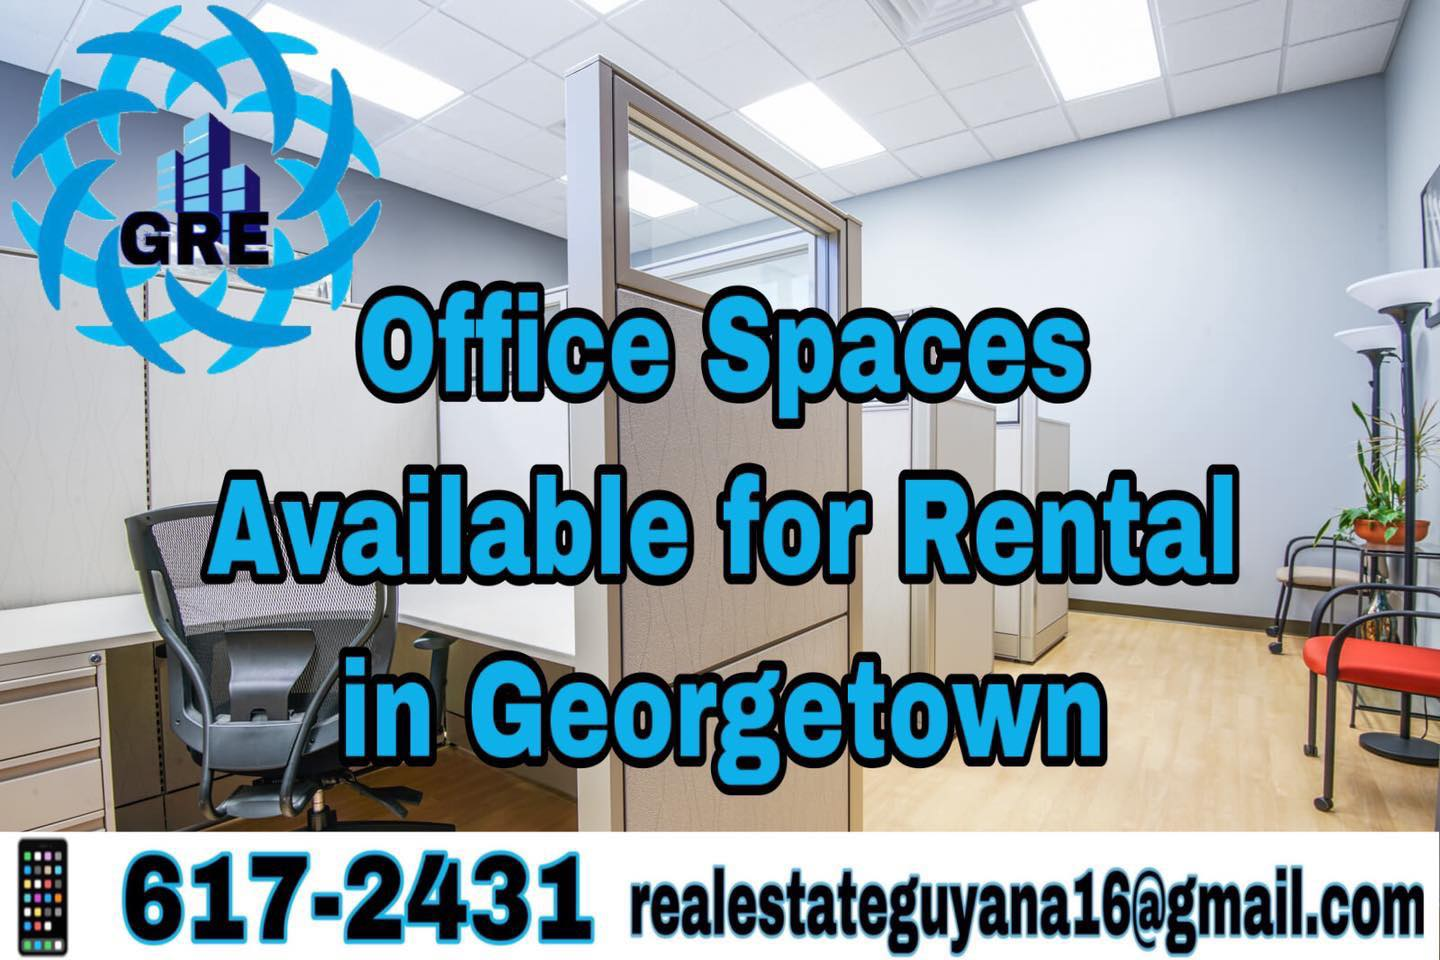 Office Spaces Available for rental in Georgetown.